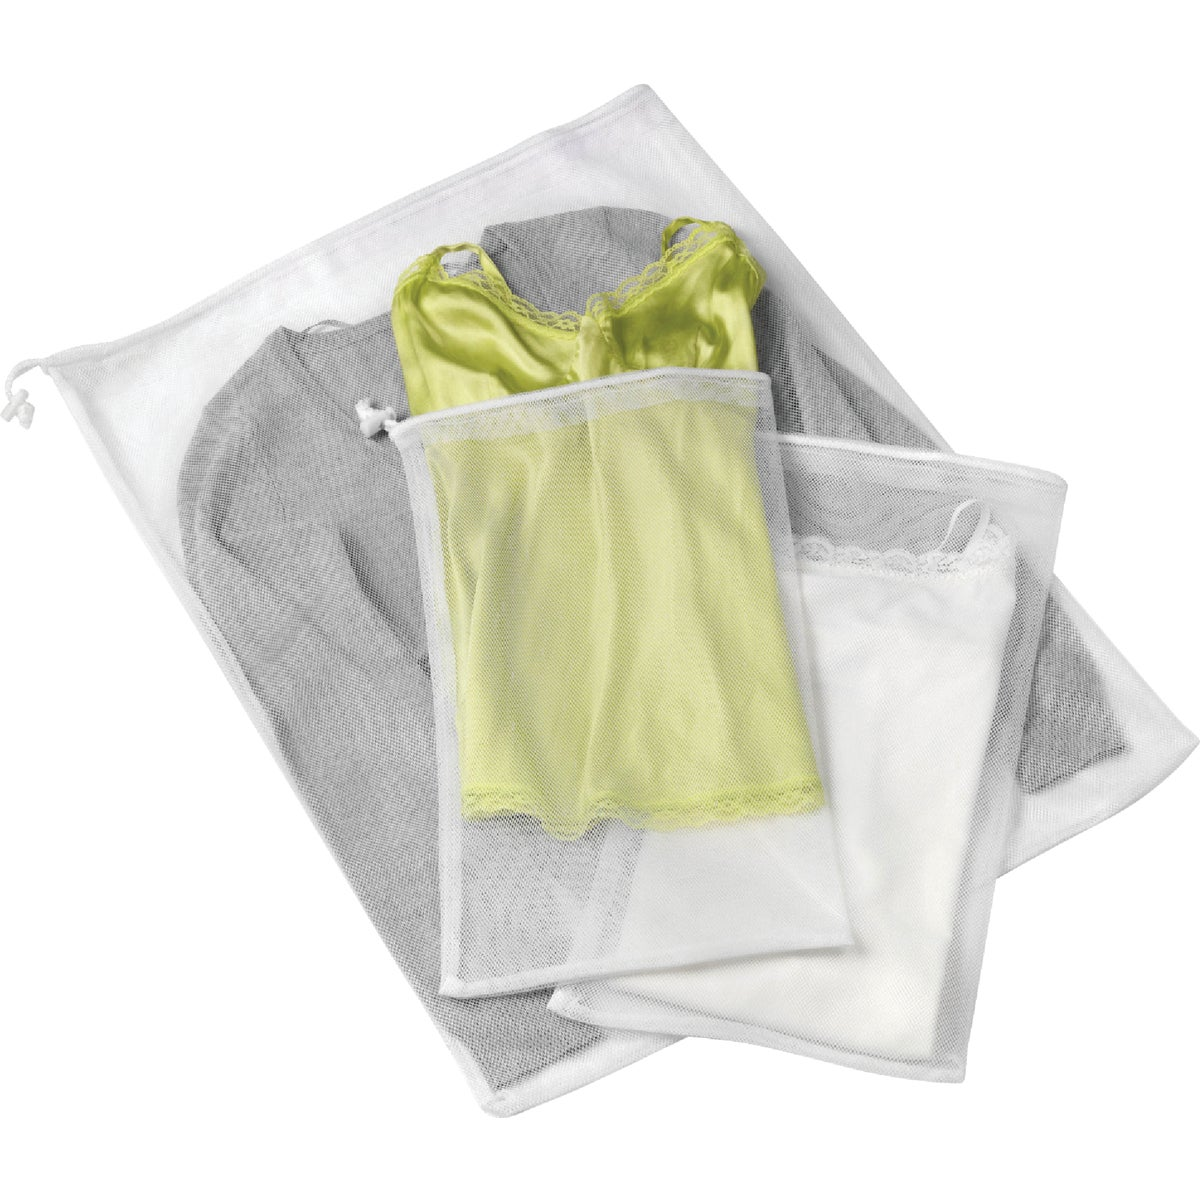 3PC MESH WASH BAG